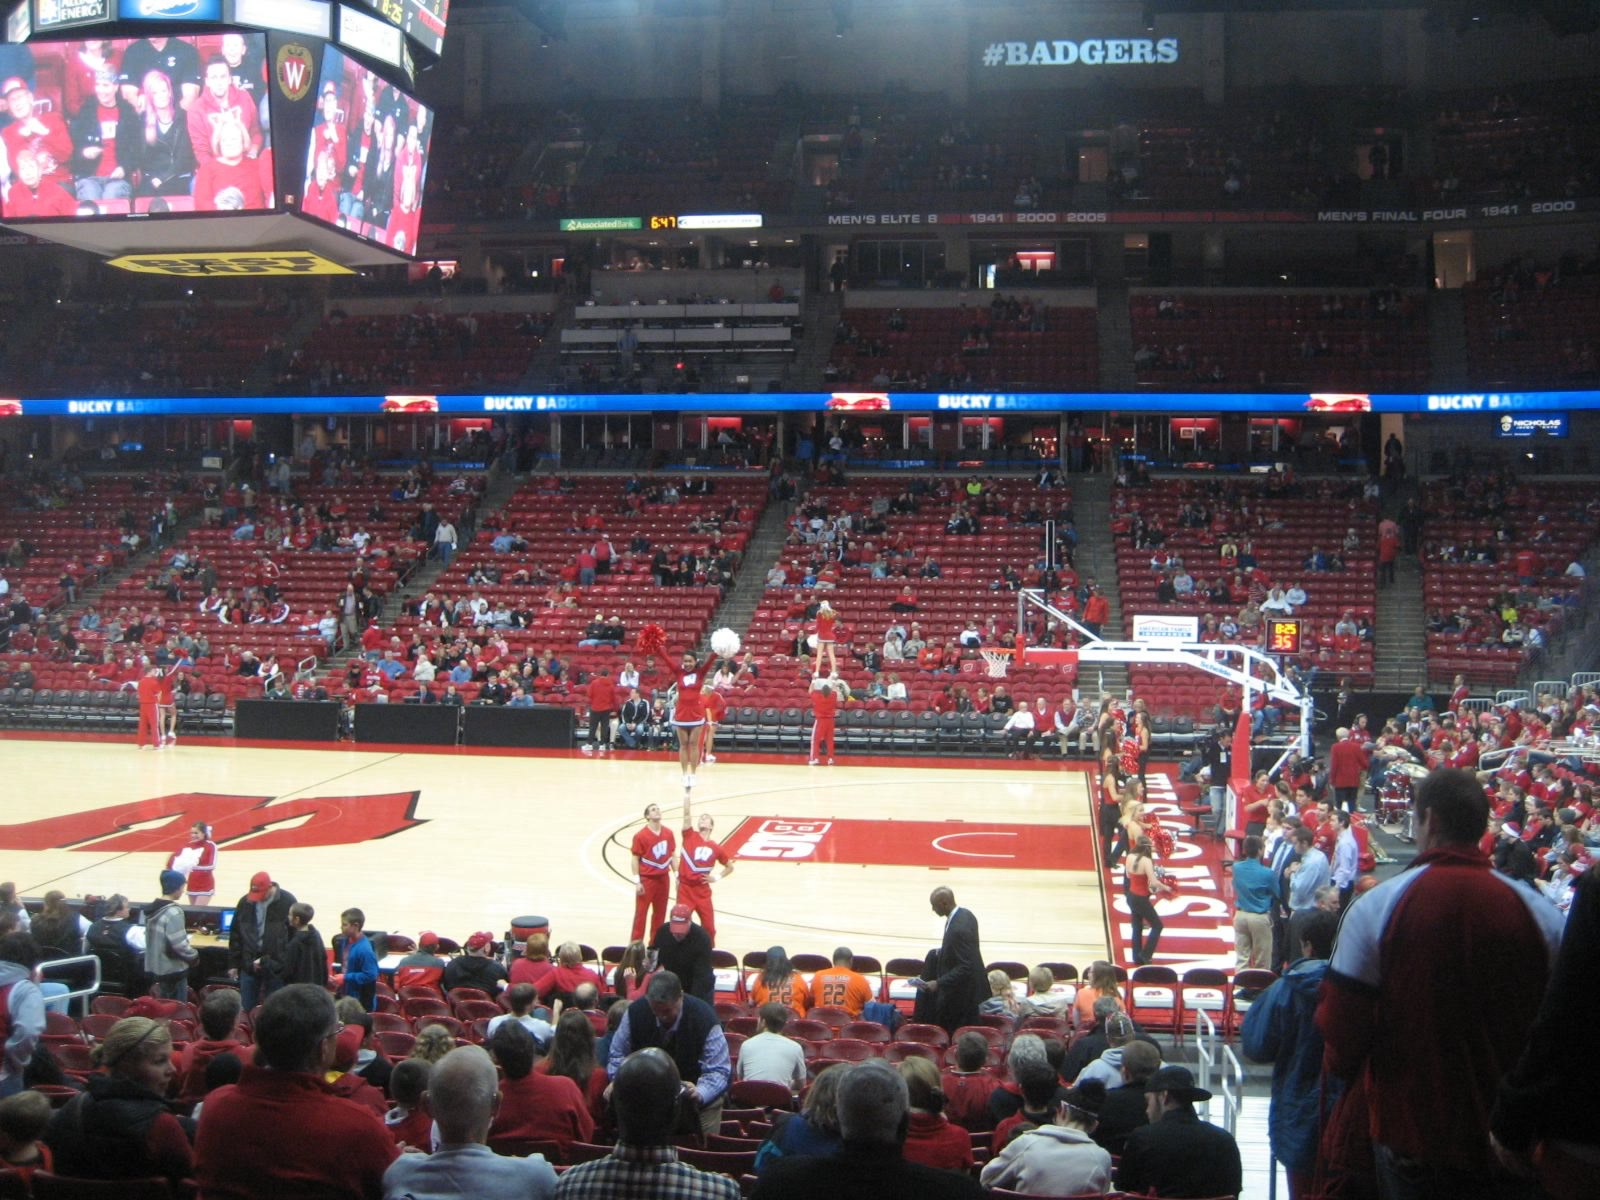 Section 121, Row N